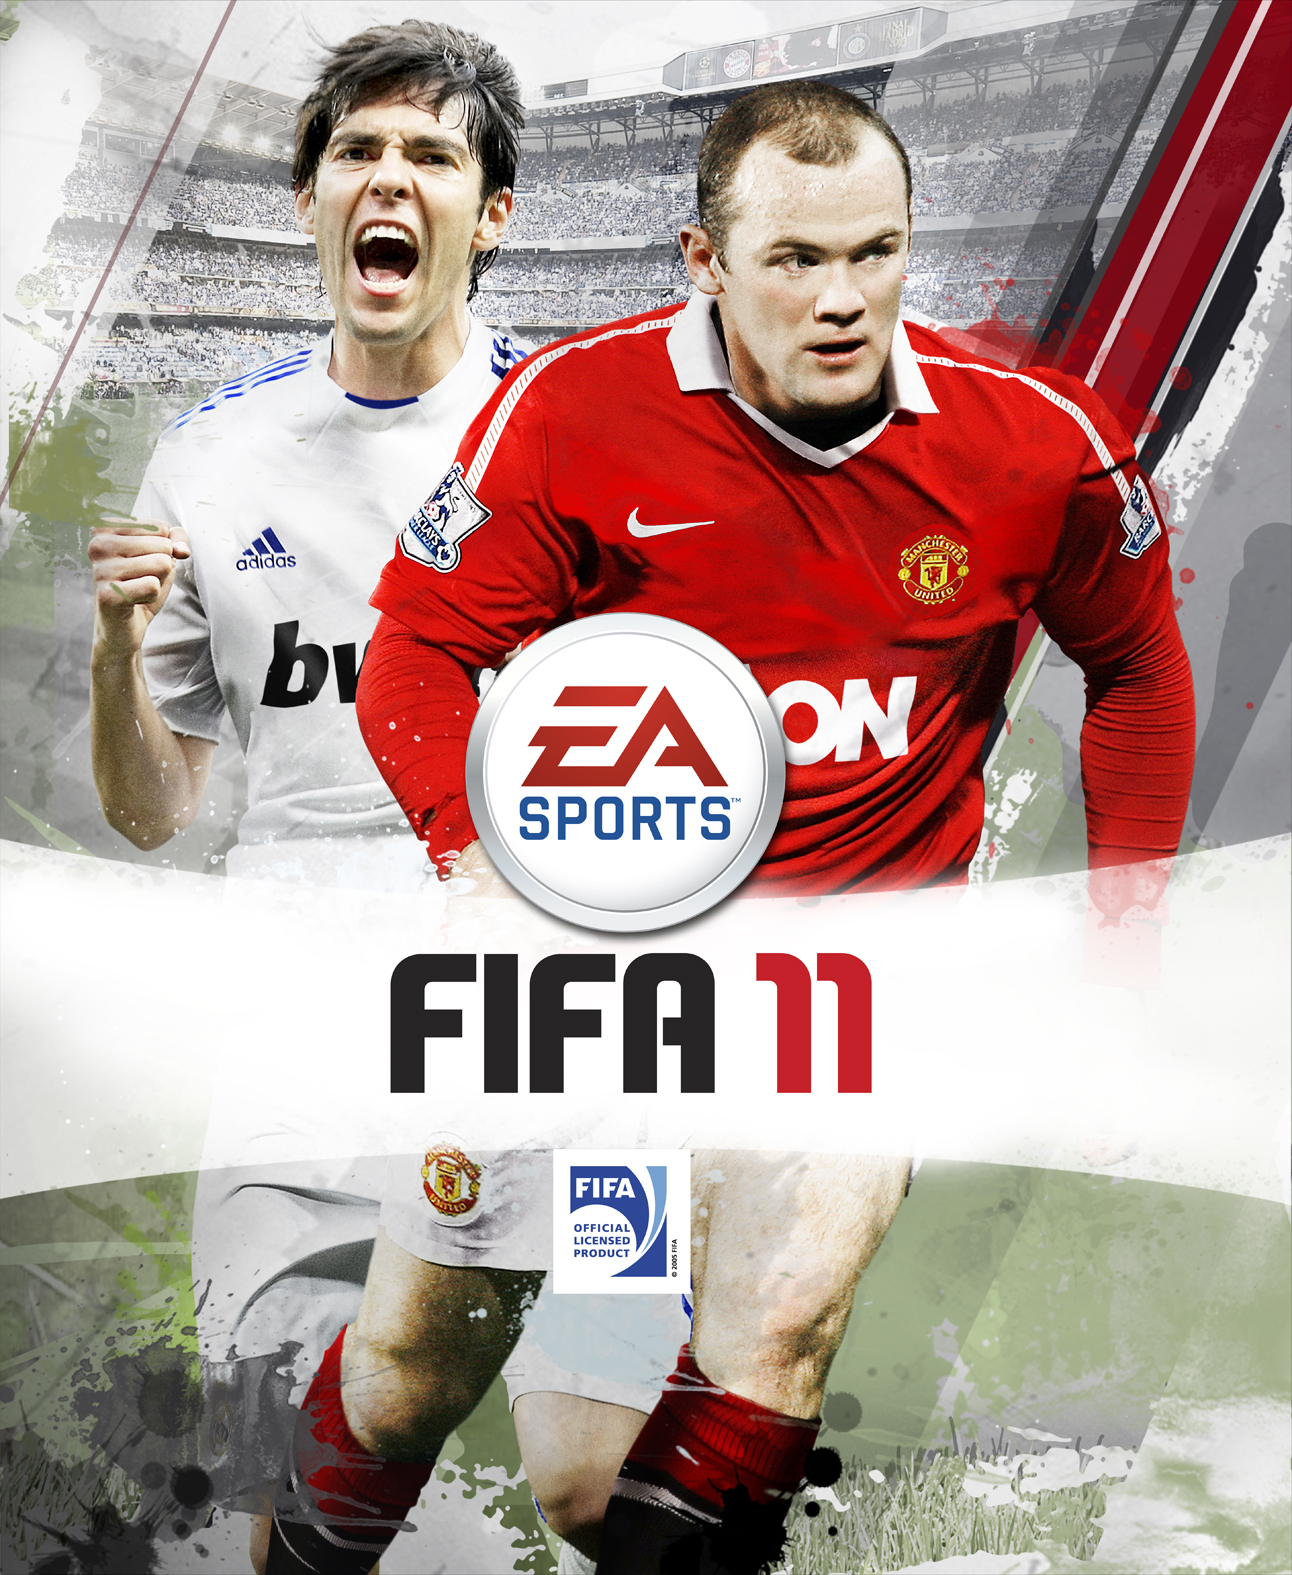 Fifa 11 The most addicting game ever made. Fifa